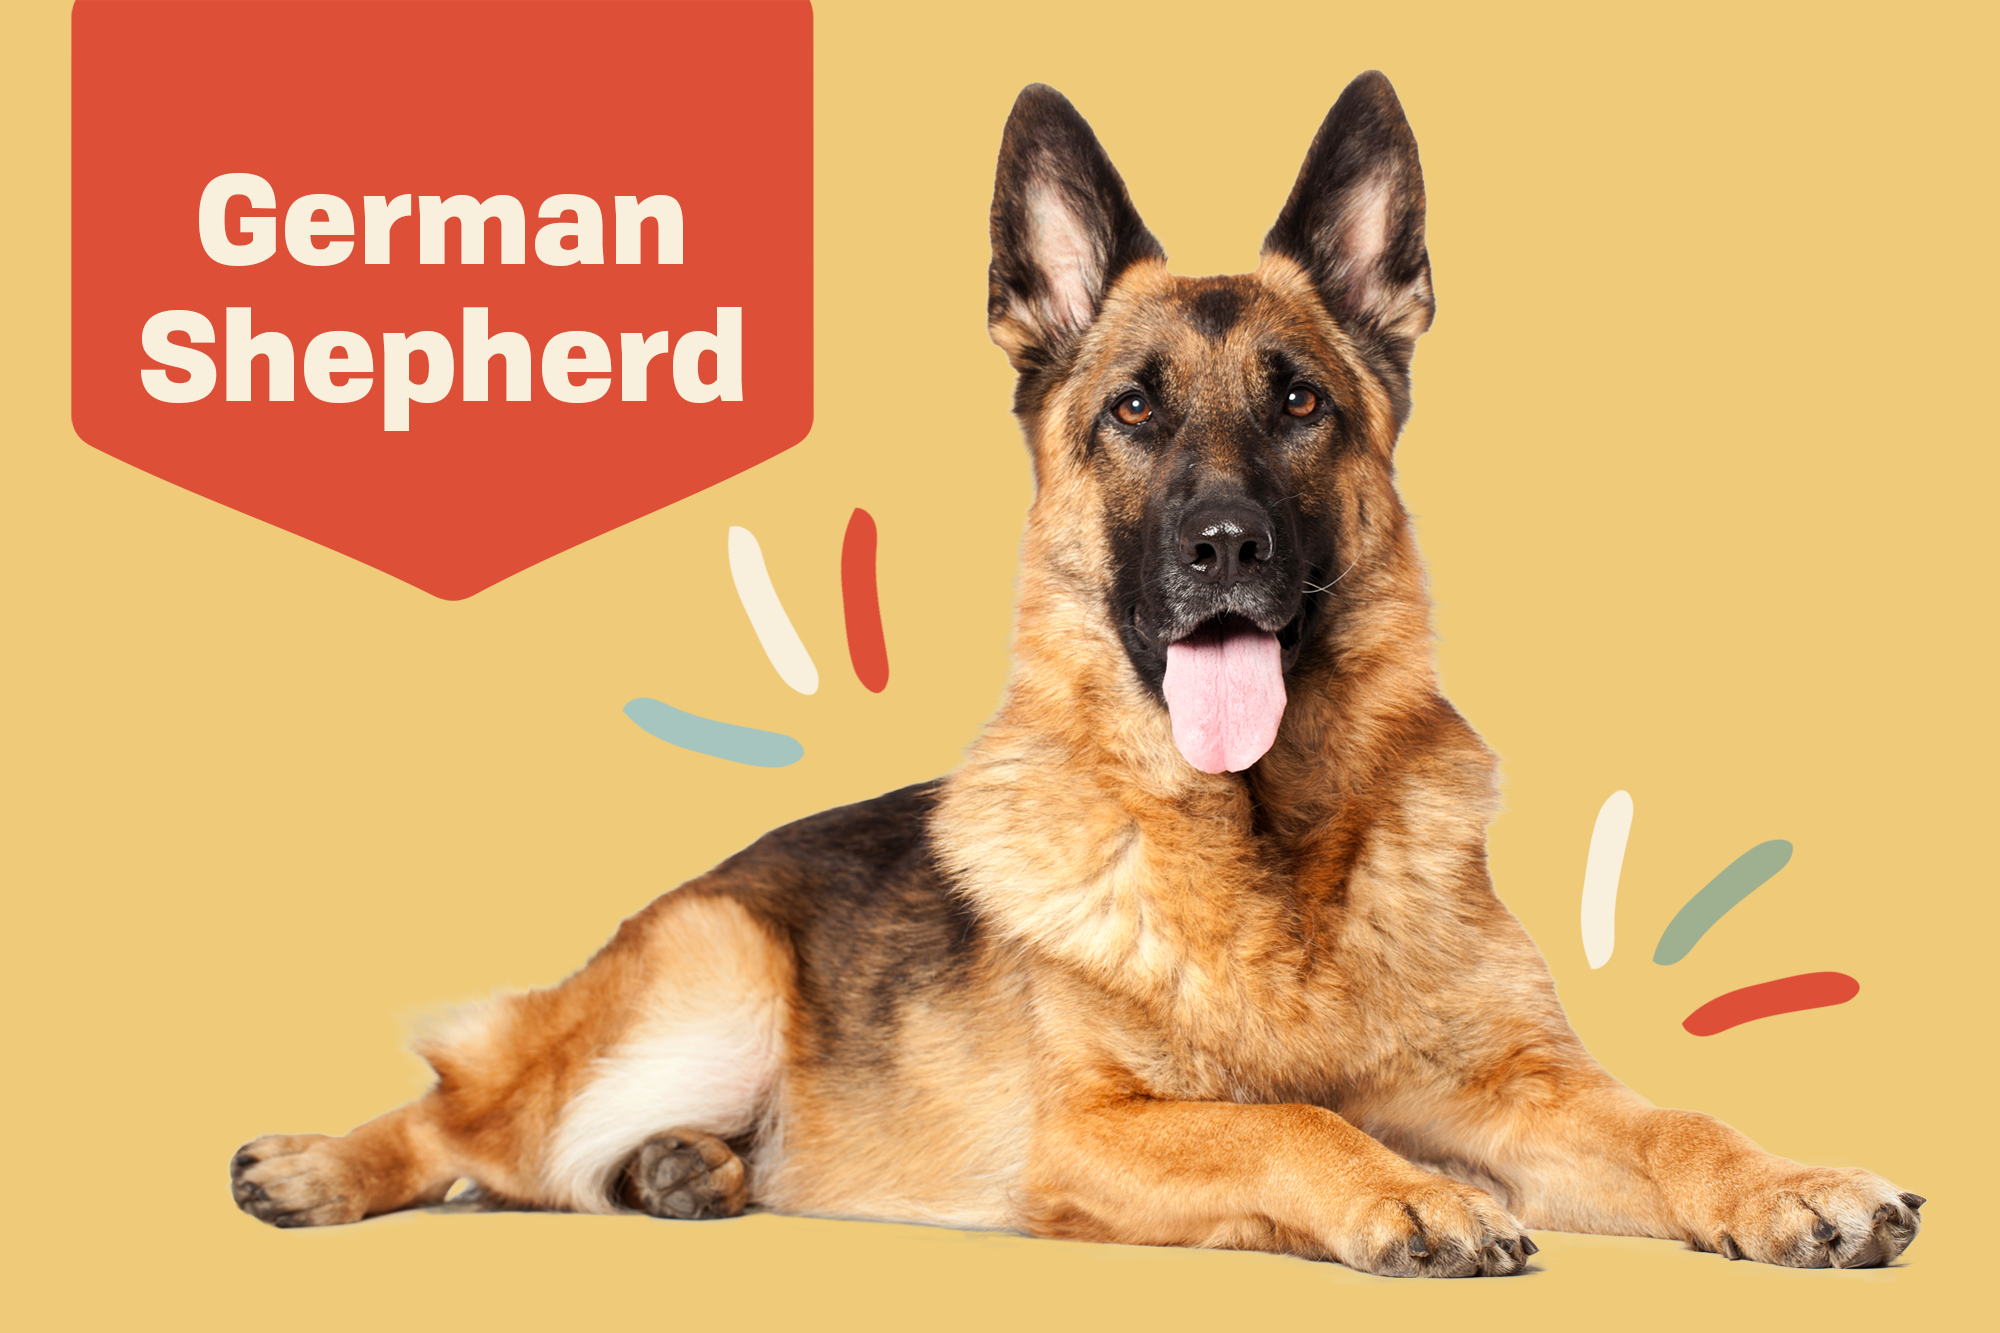 German Shepherd Breed Photo